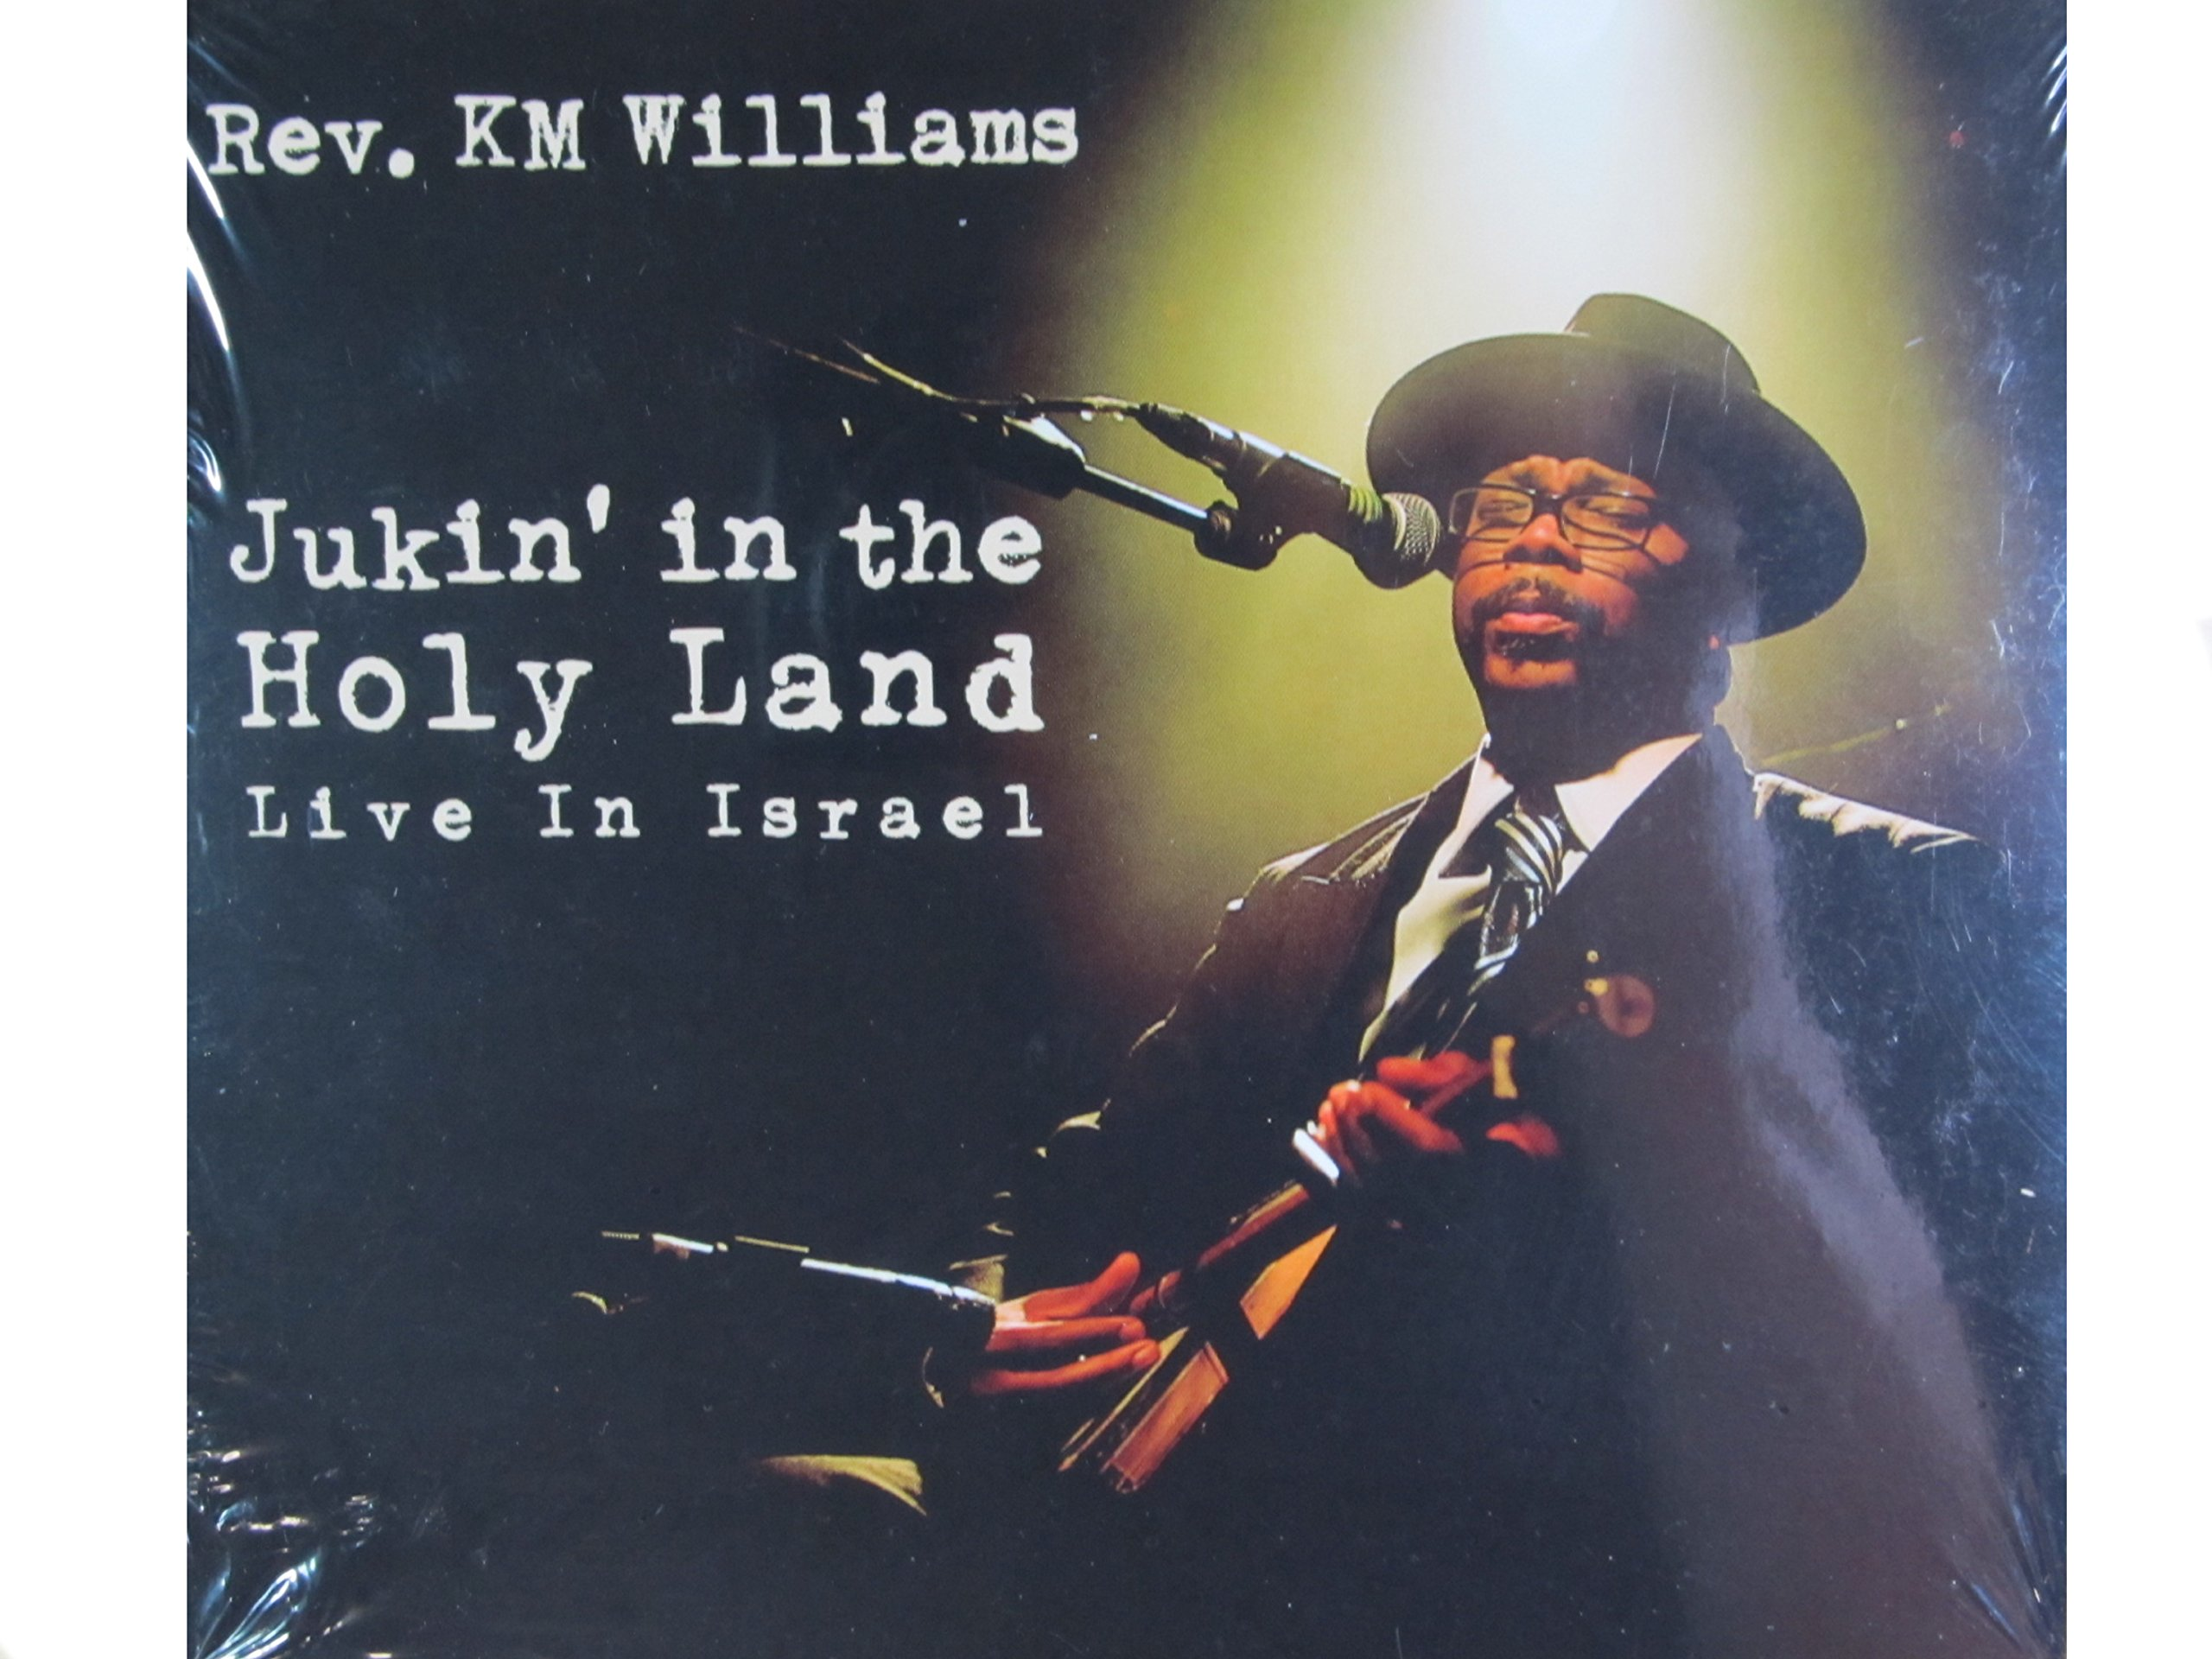 Jukin' in the Holy Land: Live in Israel